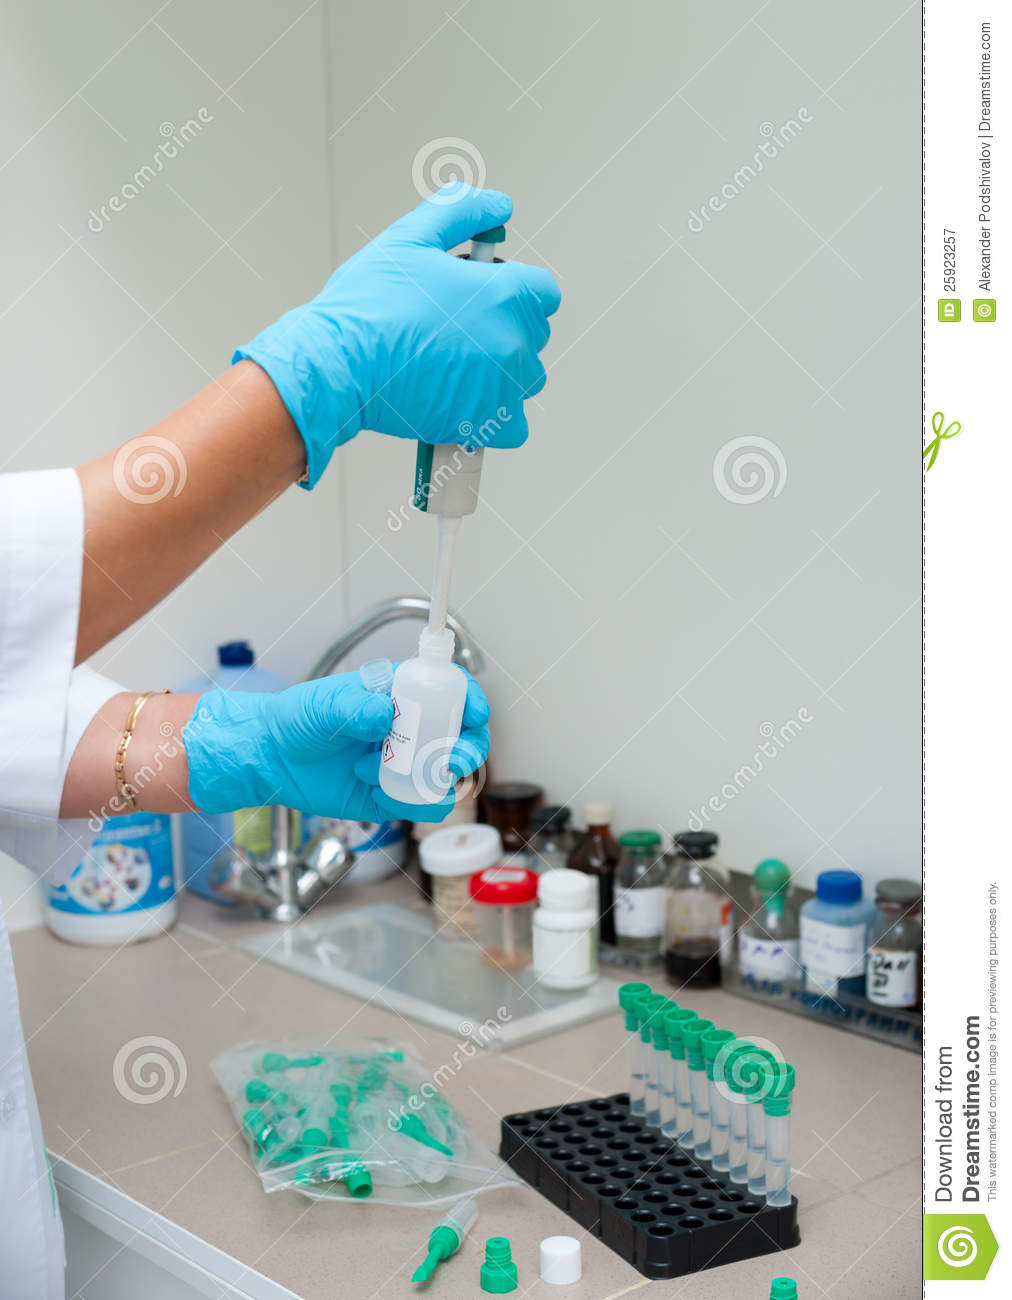 Nurse makes laboratory analysis